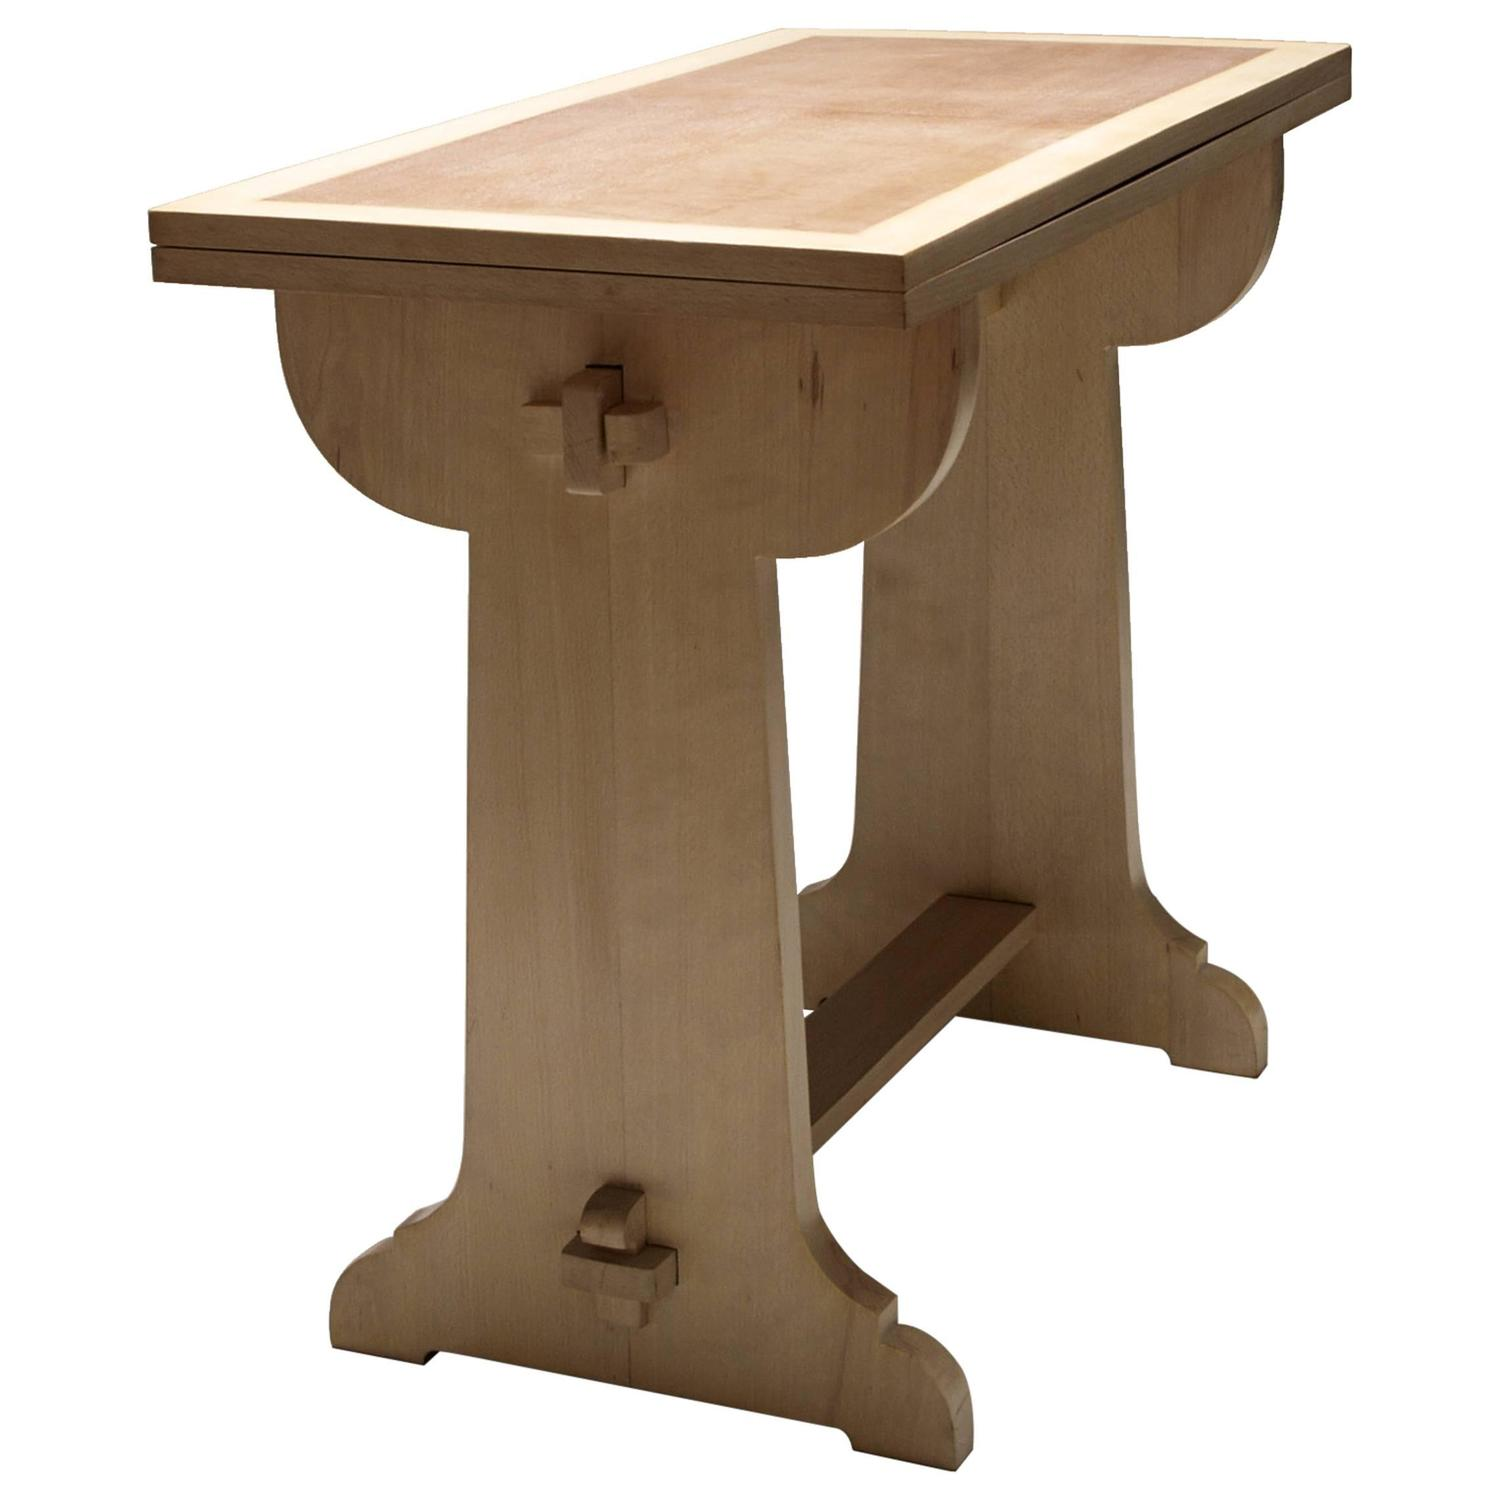 Arts and crafts drop leaf table : 3202442z from myfavoritecrafts.com size 1500 x 1500 jpeg 77kB